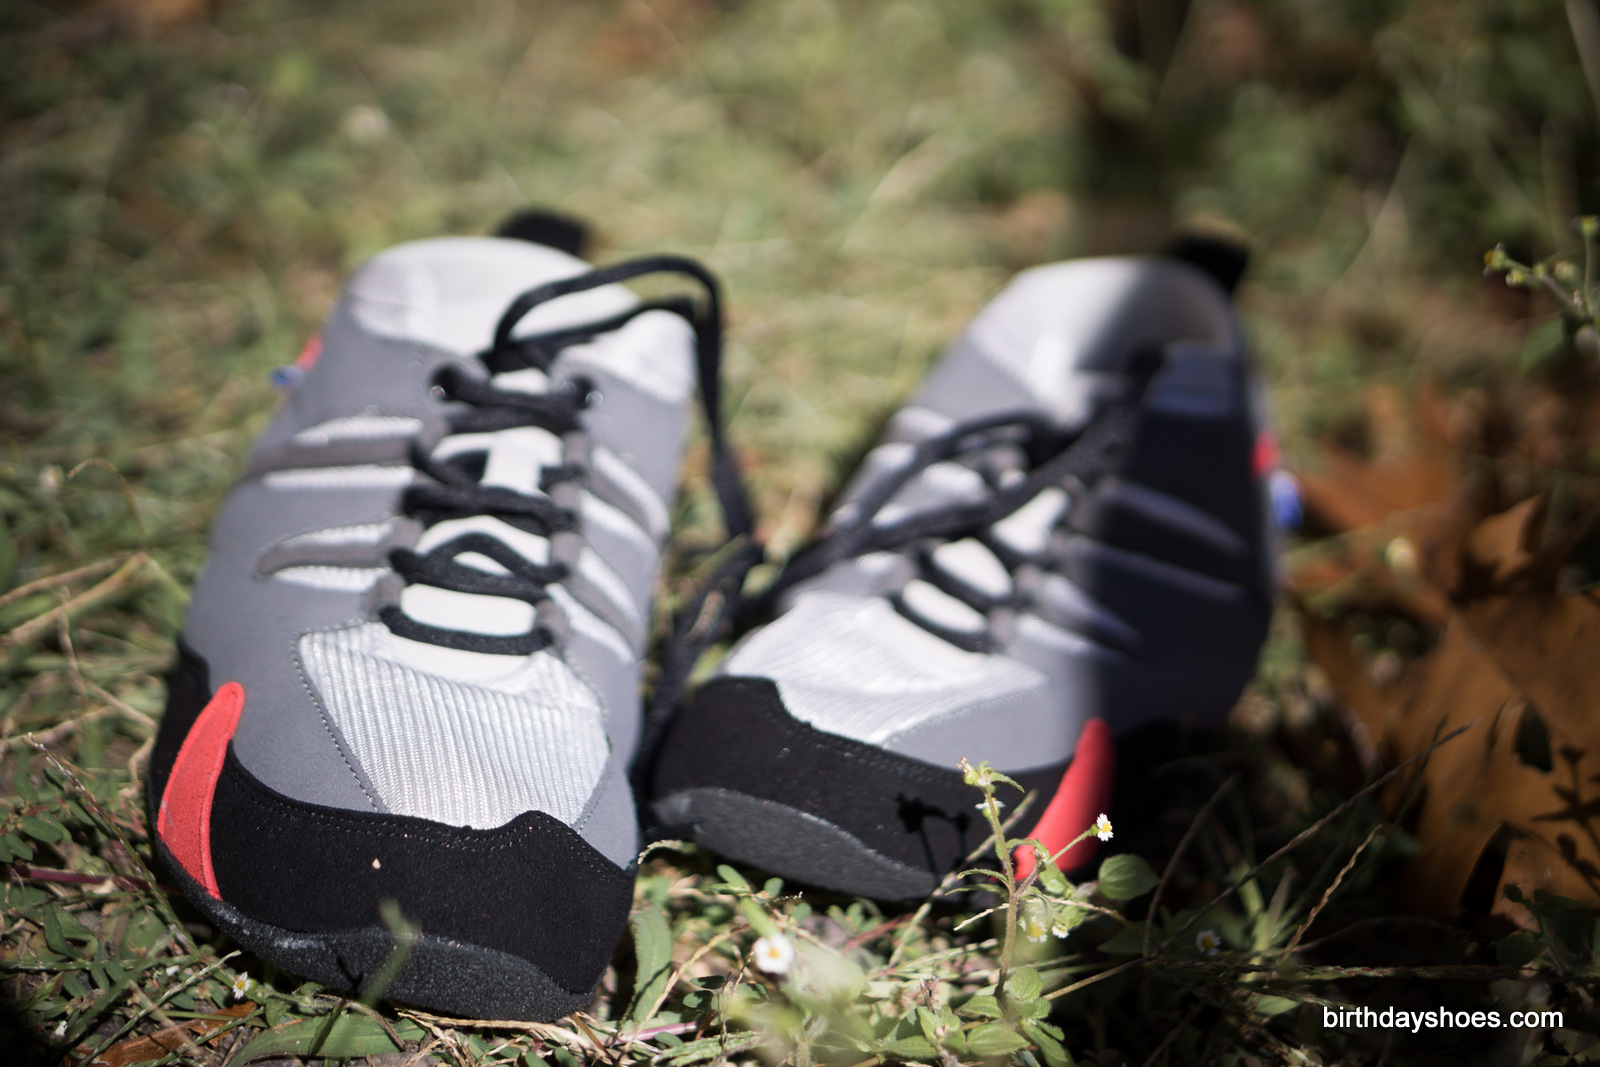 The Feelmax Panka 2—Marty McFly fantasy elf shoes from the future?